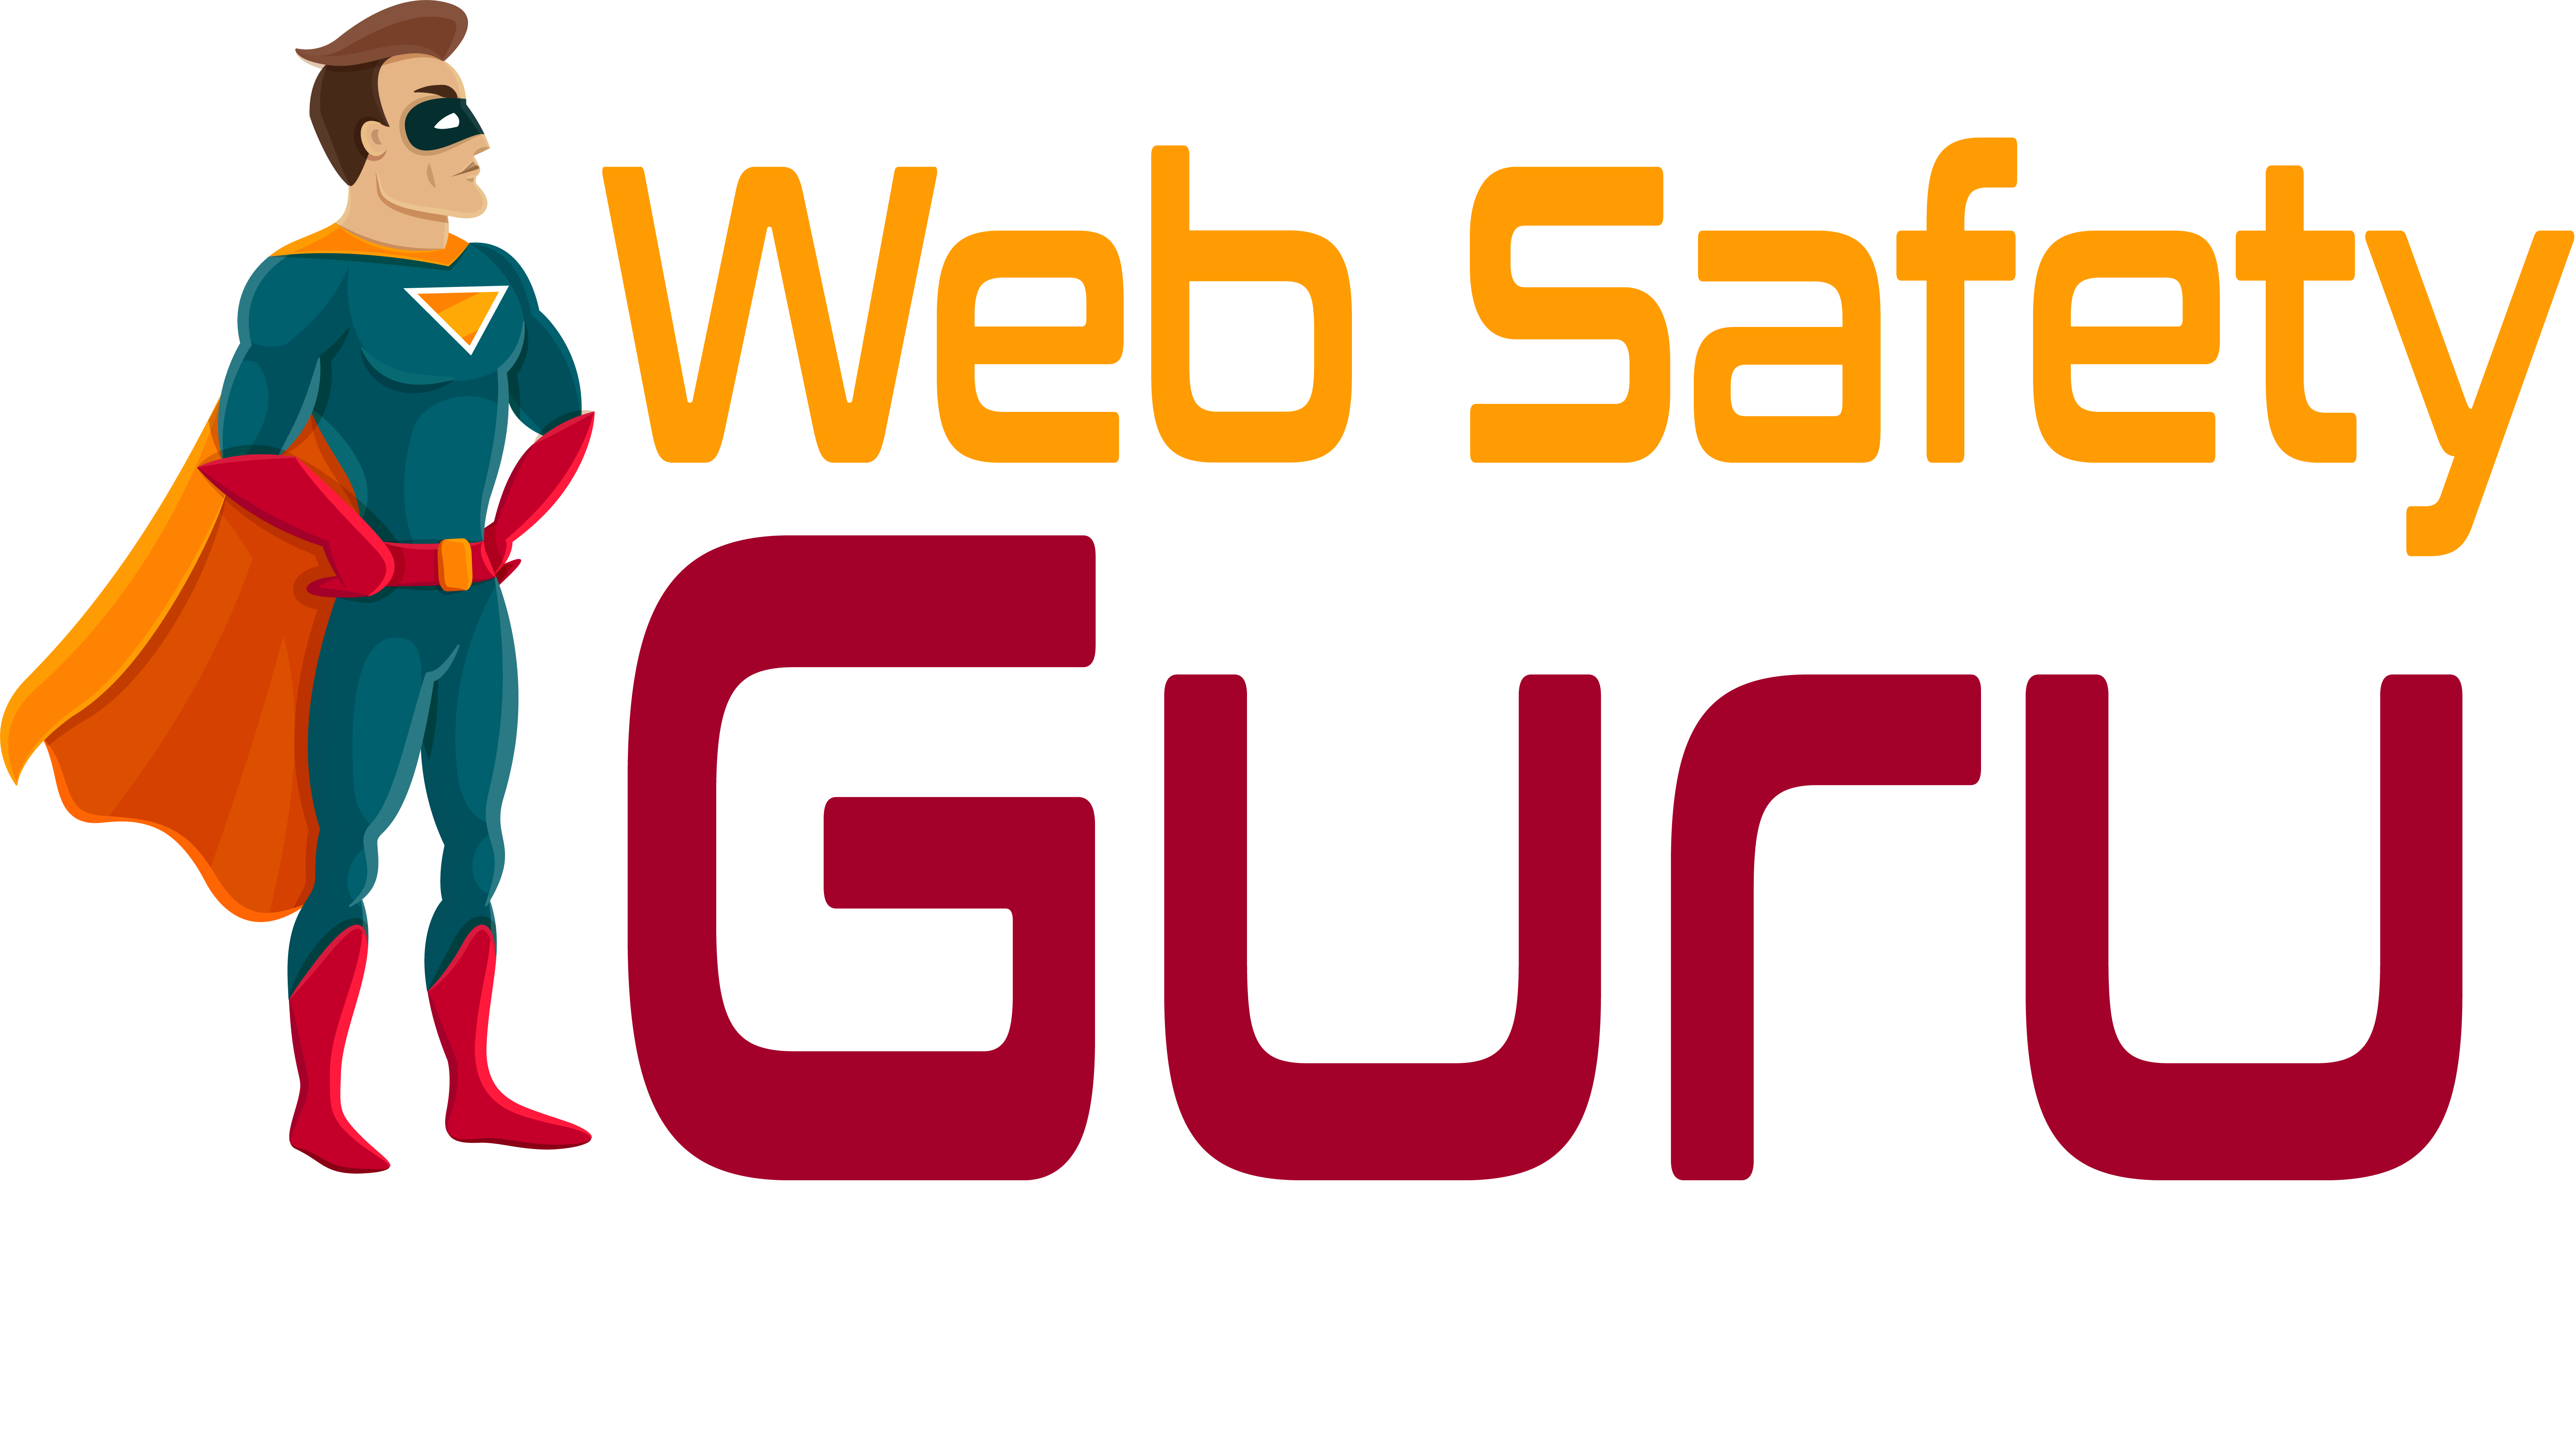 Web Safety Guru. Computer lessons in your own home. Computer tuition in South Croydon, Purley and nationwide via zoom.